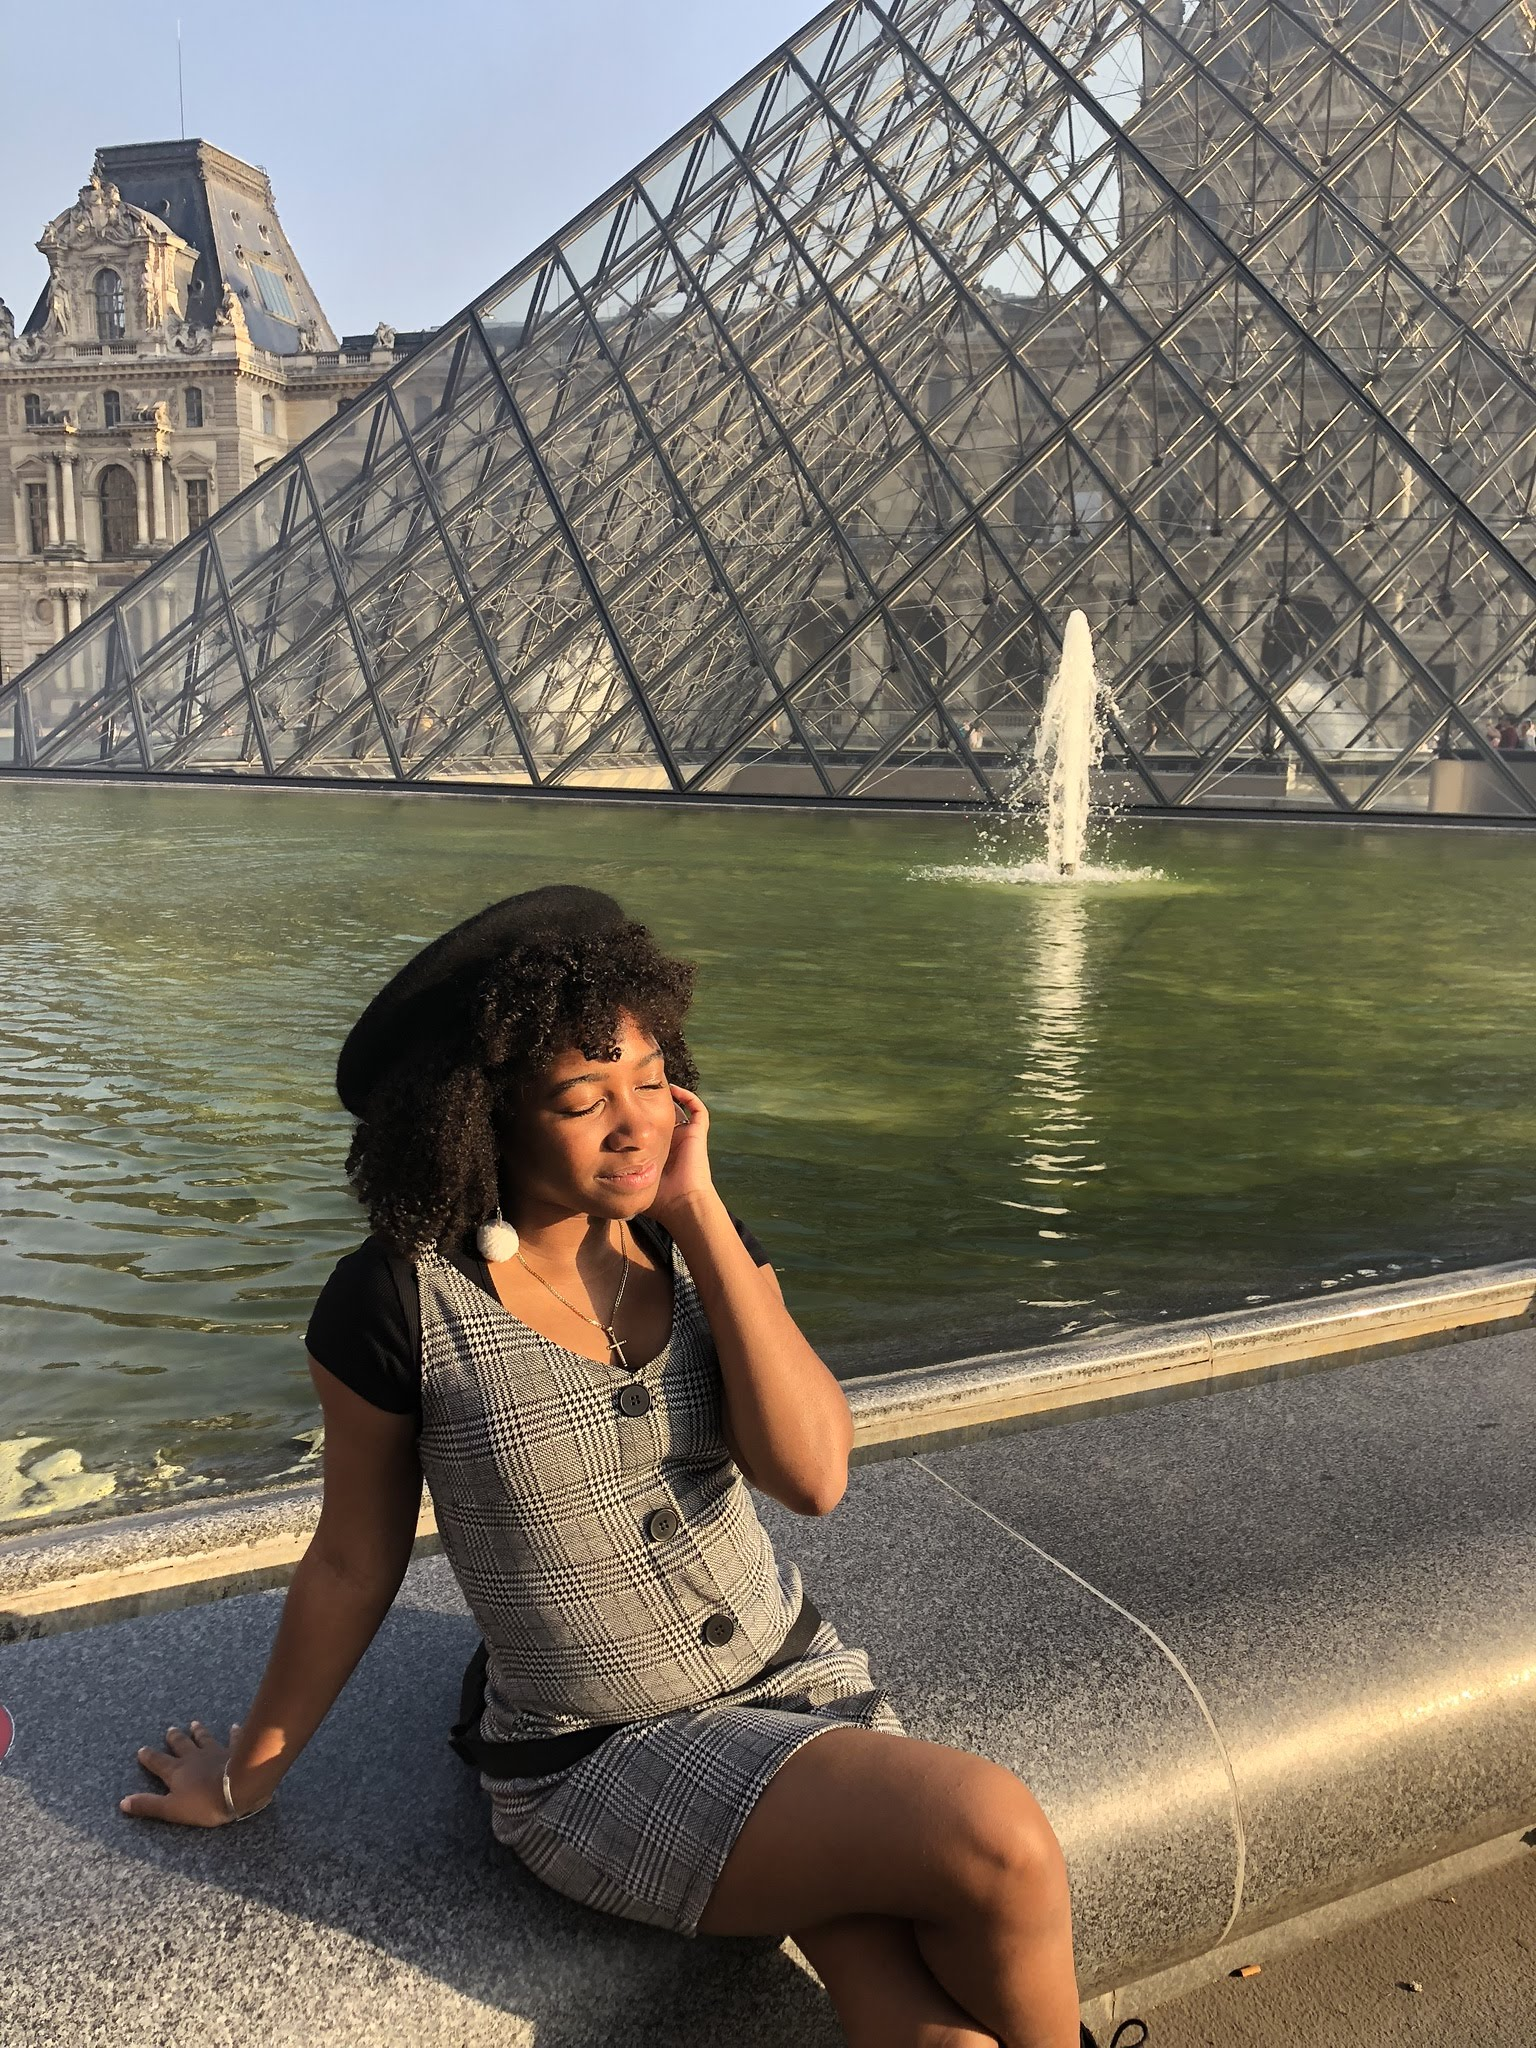 Makayla Nicholas in front of the Louvre Pyramid in Paris.